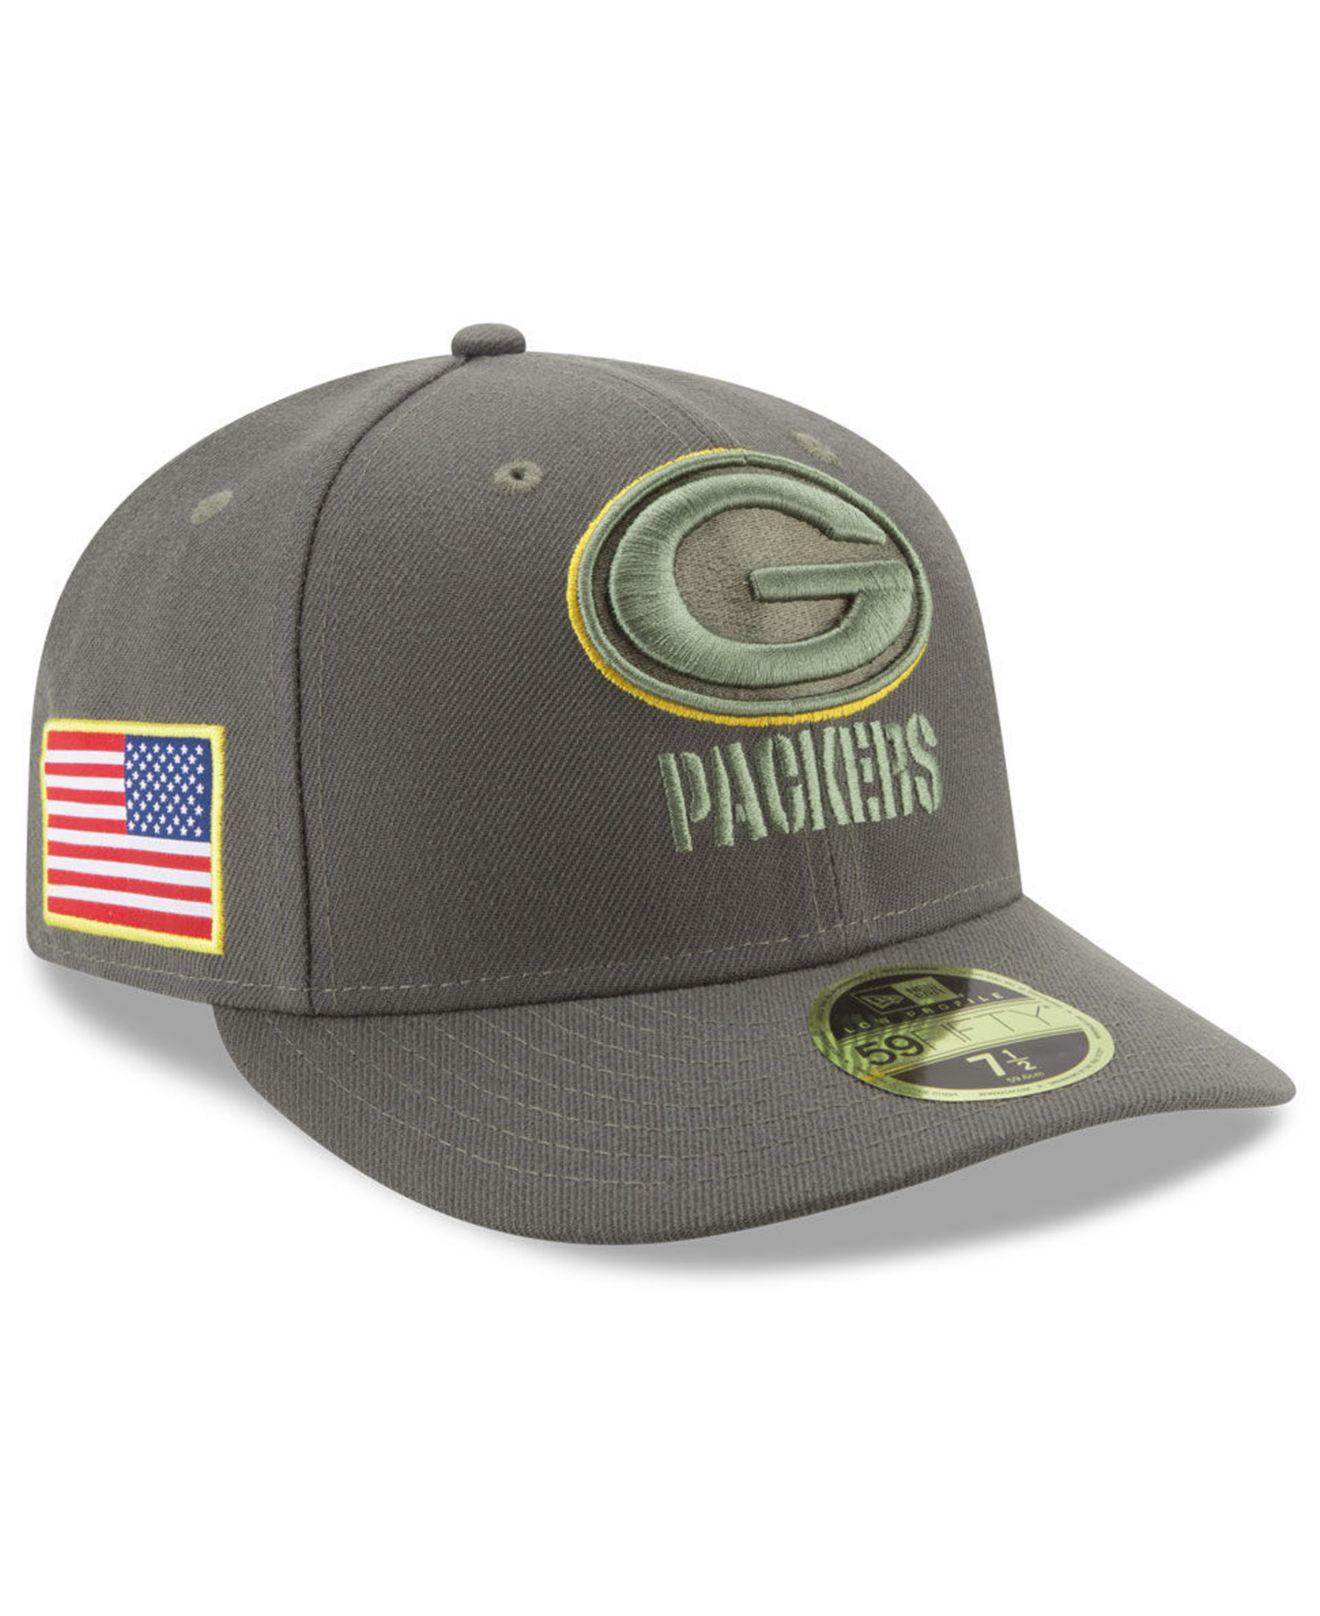 Lyst - Ktz Green Bay Packers Salute To Service Low Profile 59fifty ... 9b4dcc63b